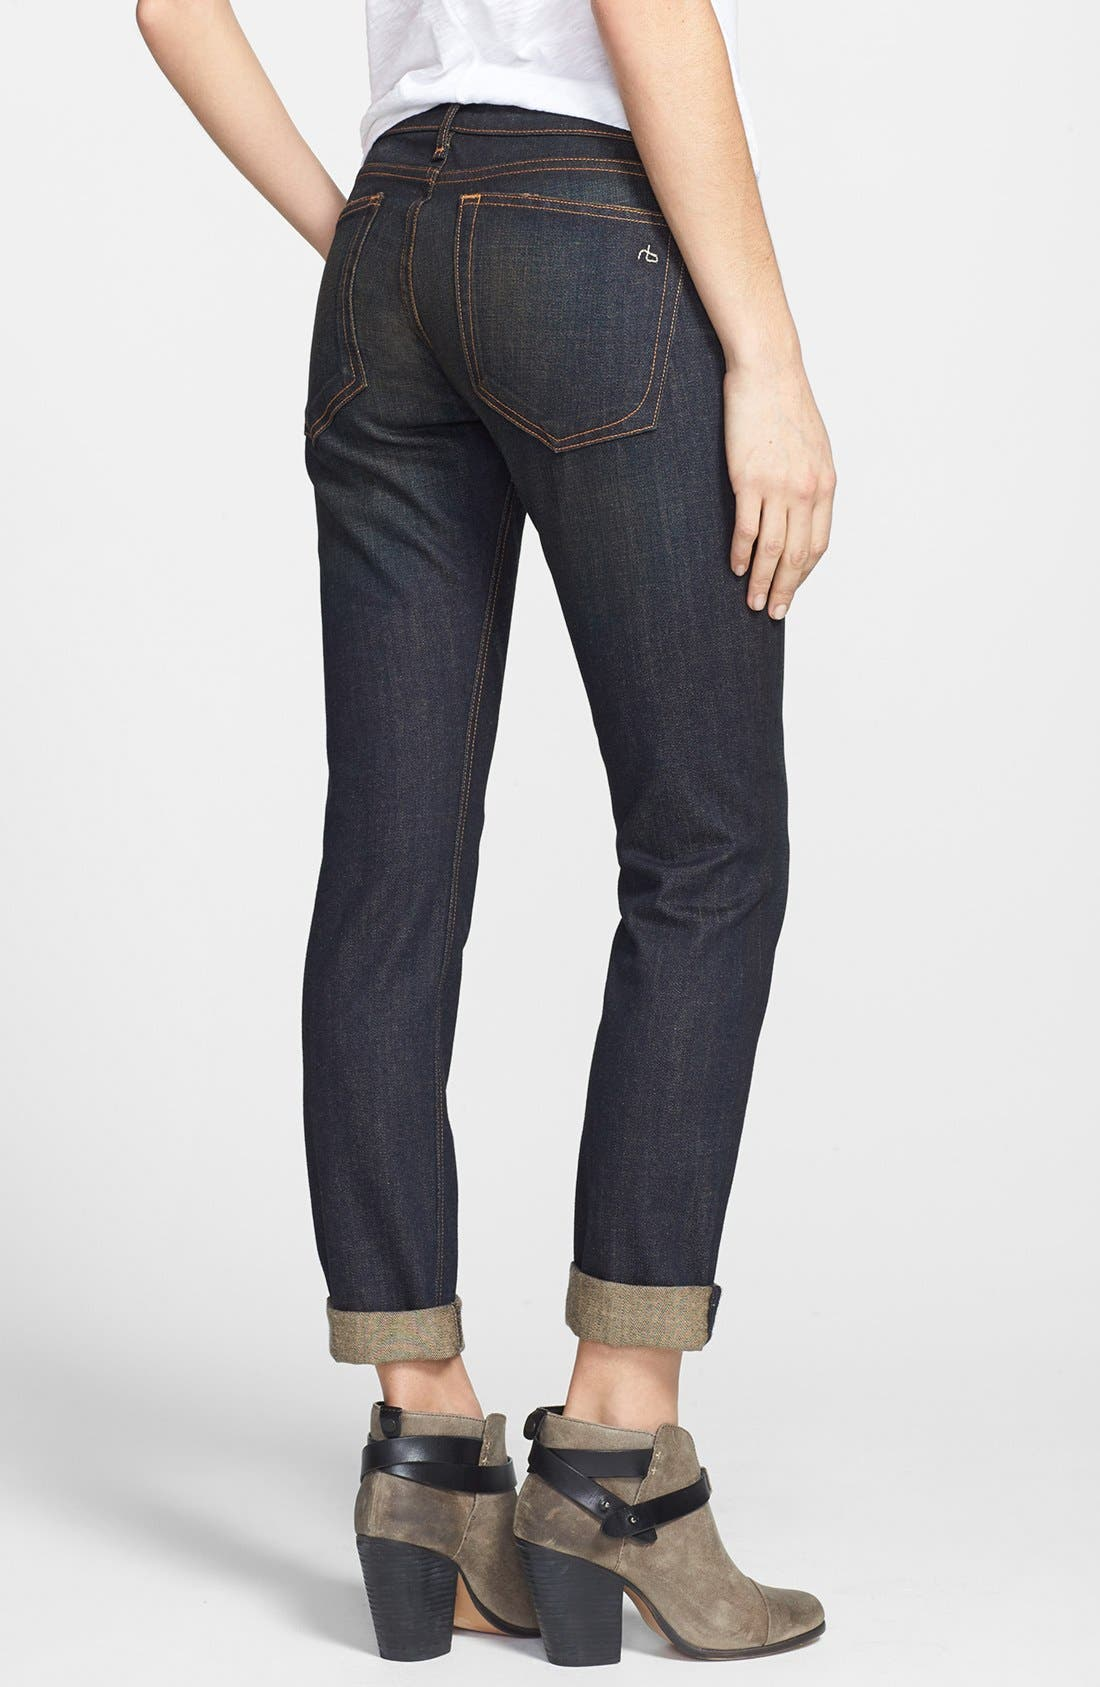 Alternate Image 2  - rag & bone/JEAN 'The Dre' Slim Fit Boyfriend Jeans (Charing)